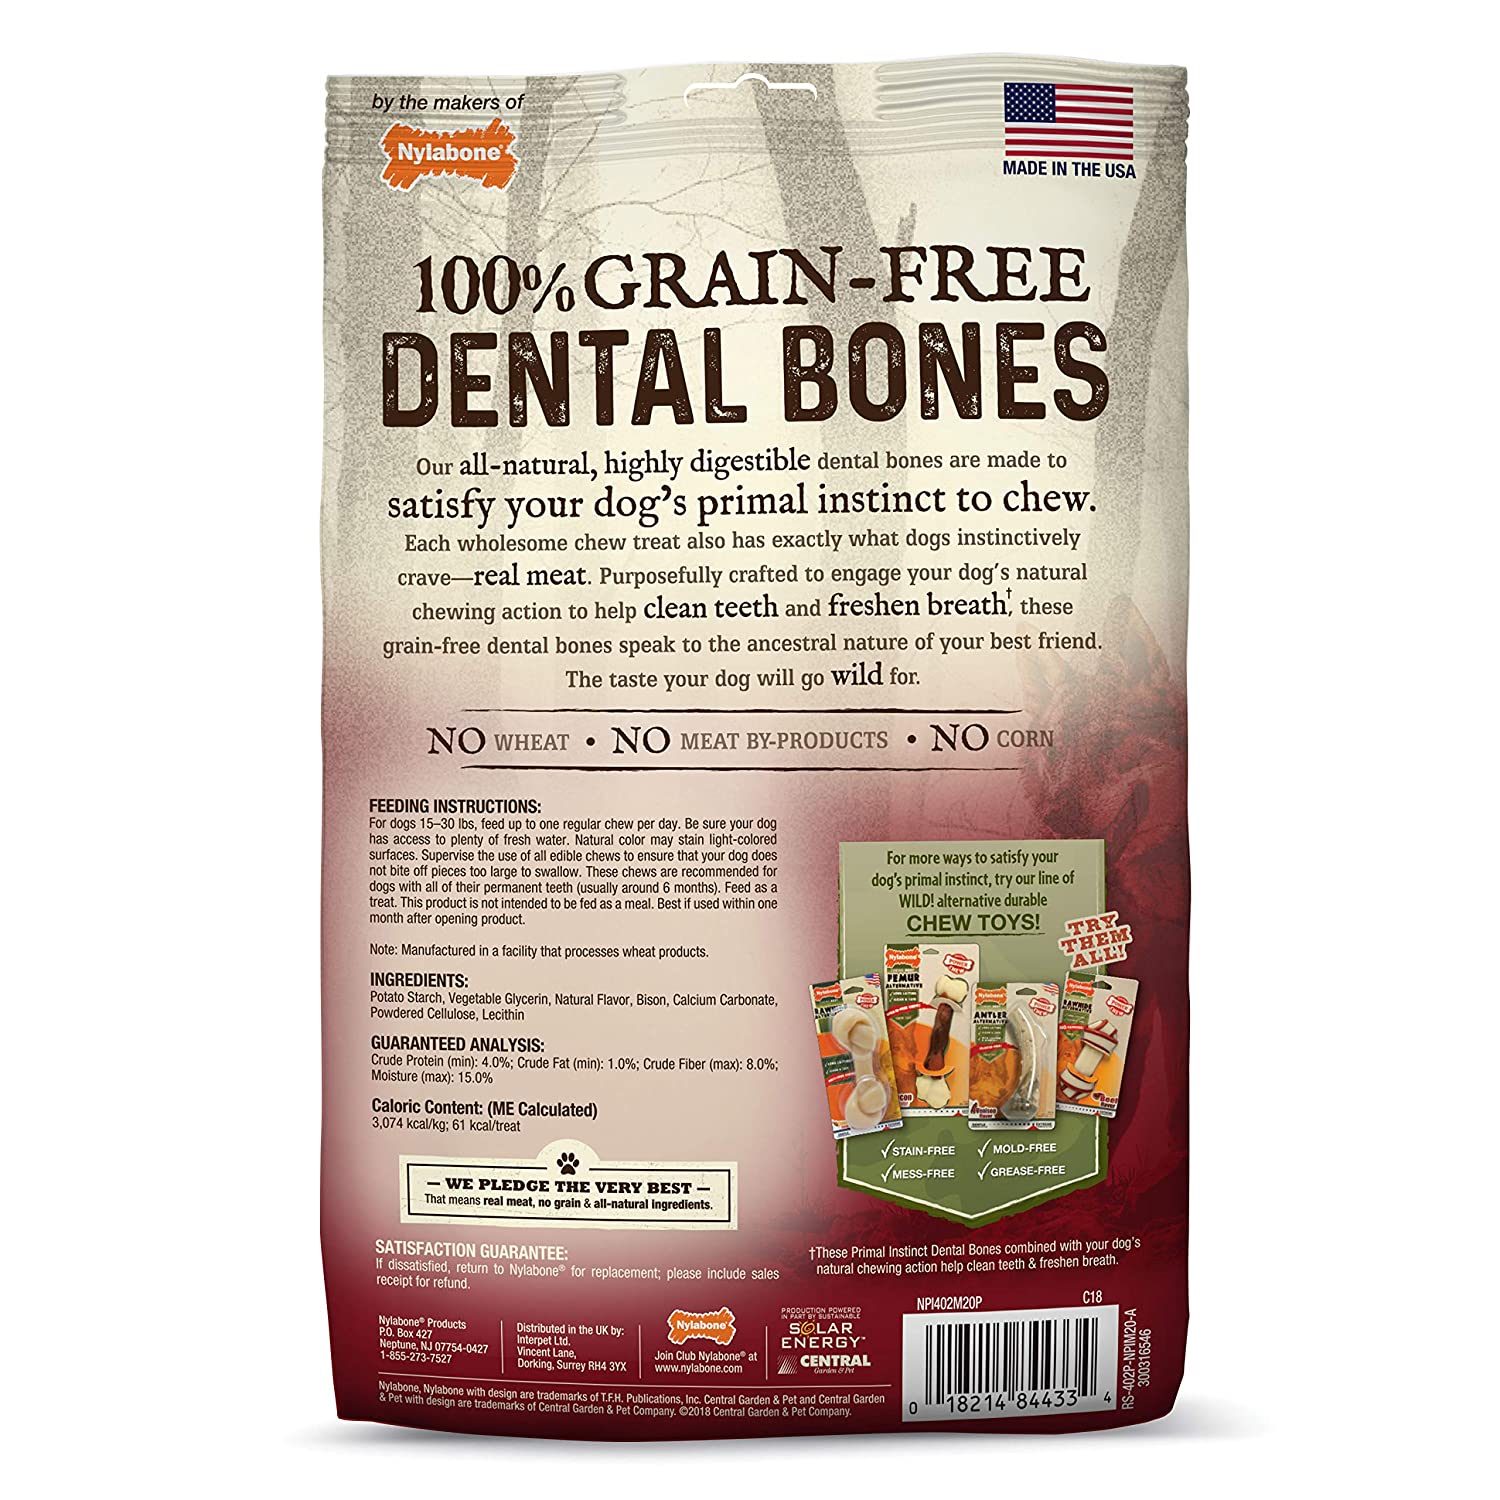 Nylabone Primal Instinct Dog Dental Chews Grain Free Dog Treats Made in The USA Regular Size Chicken or Beef Flavor